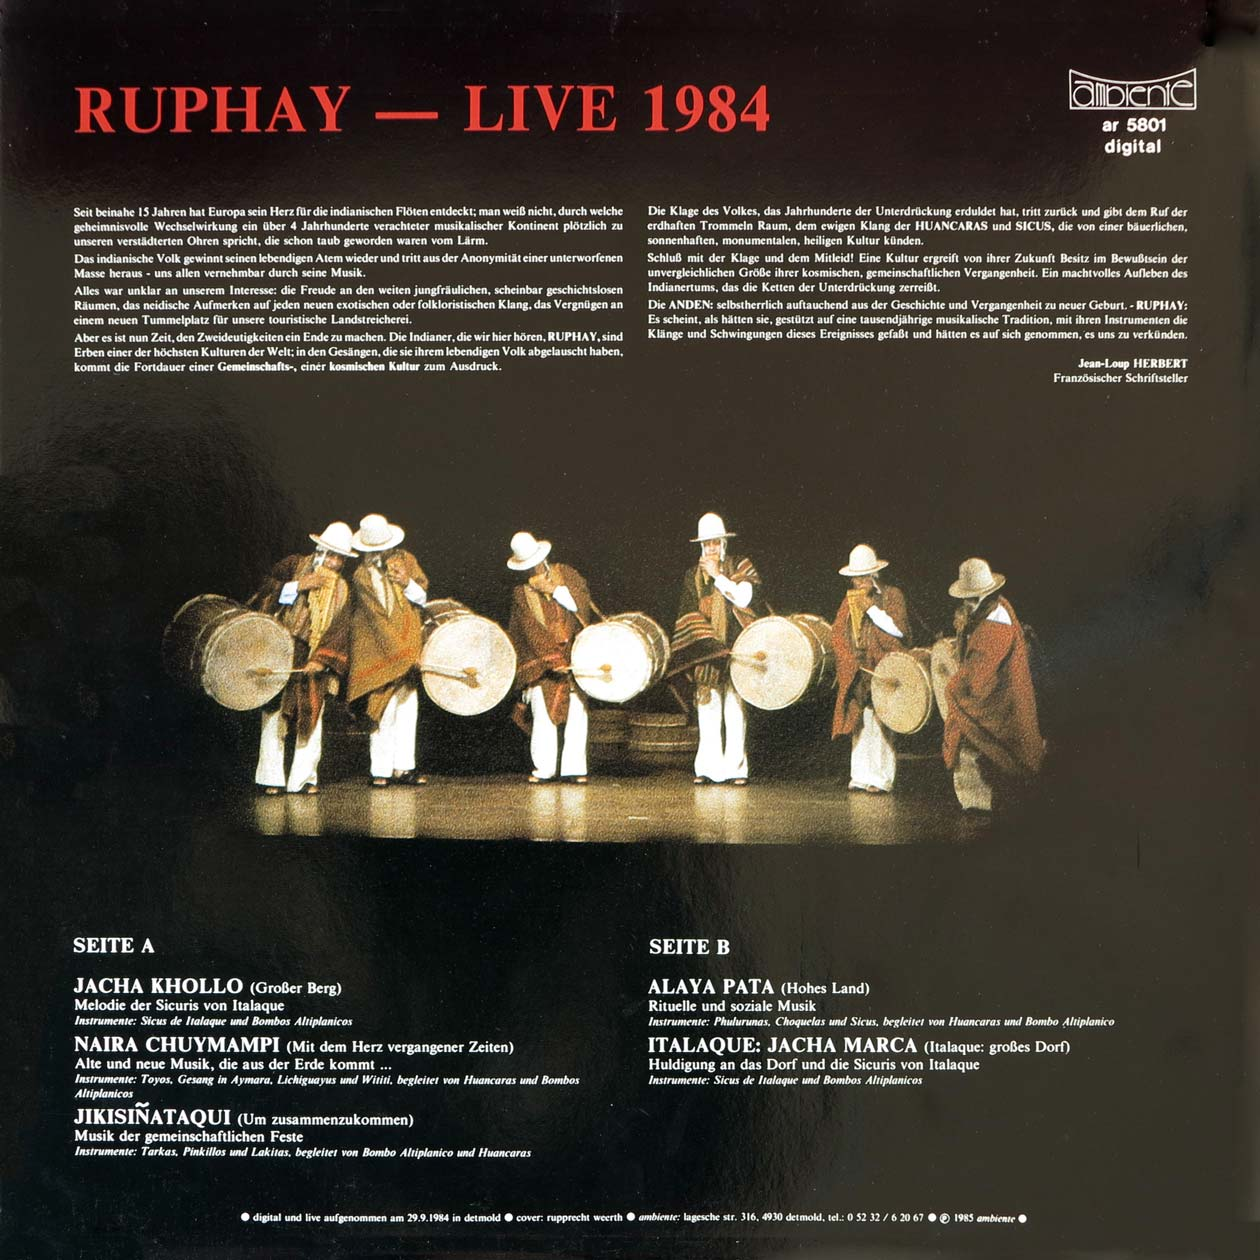 Ruphay - Live 1984